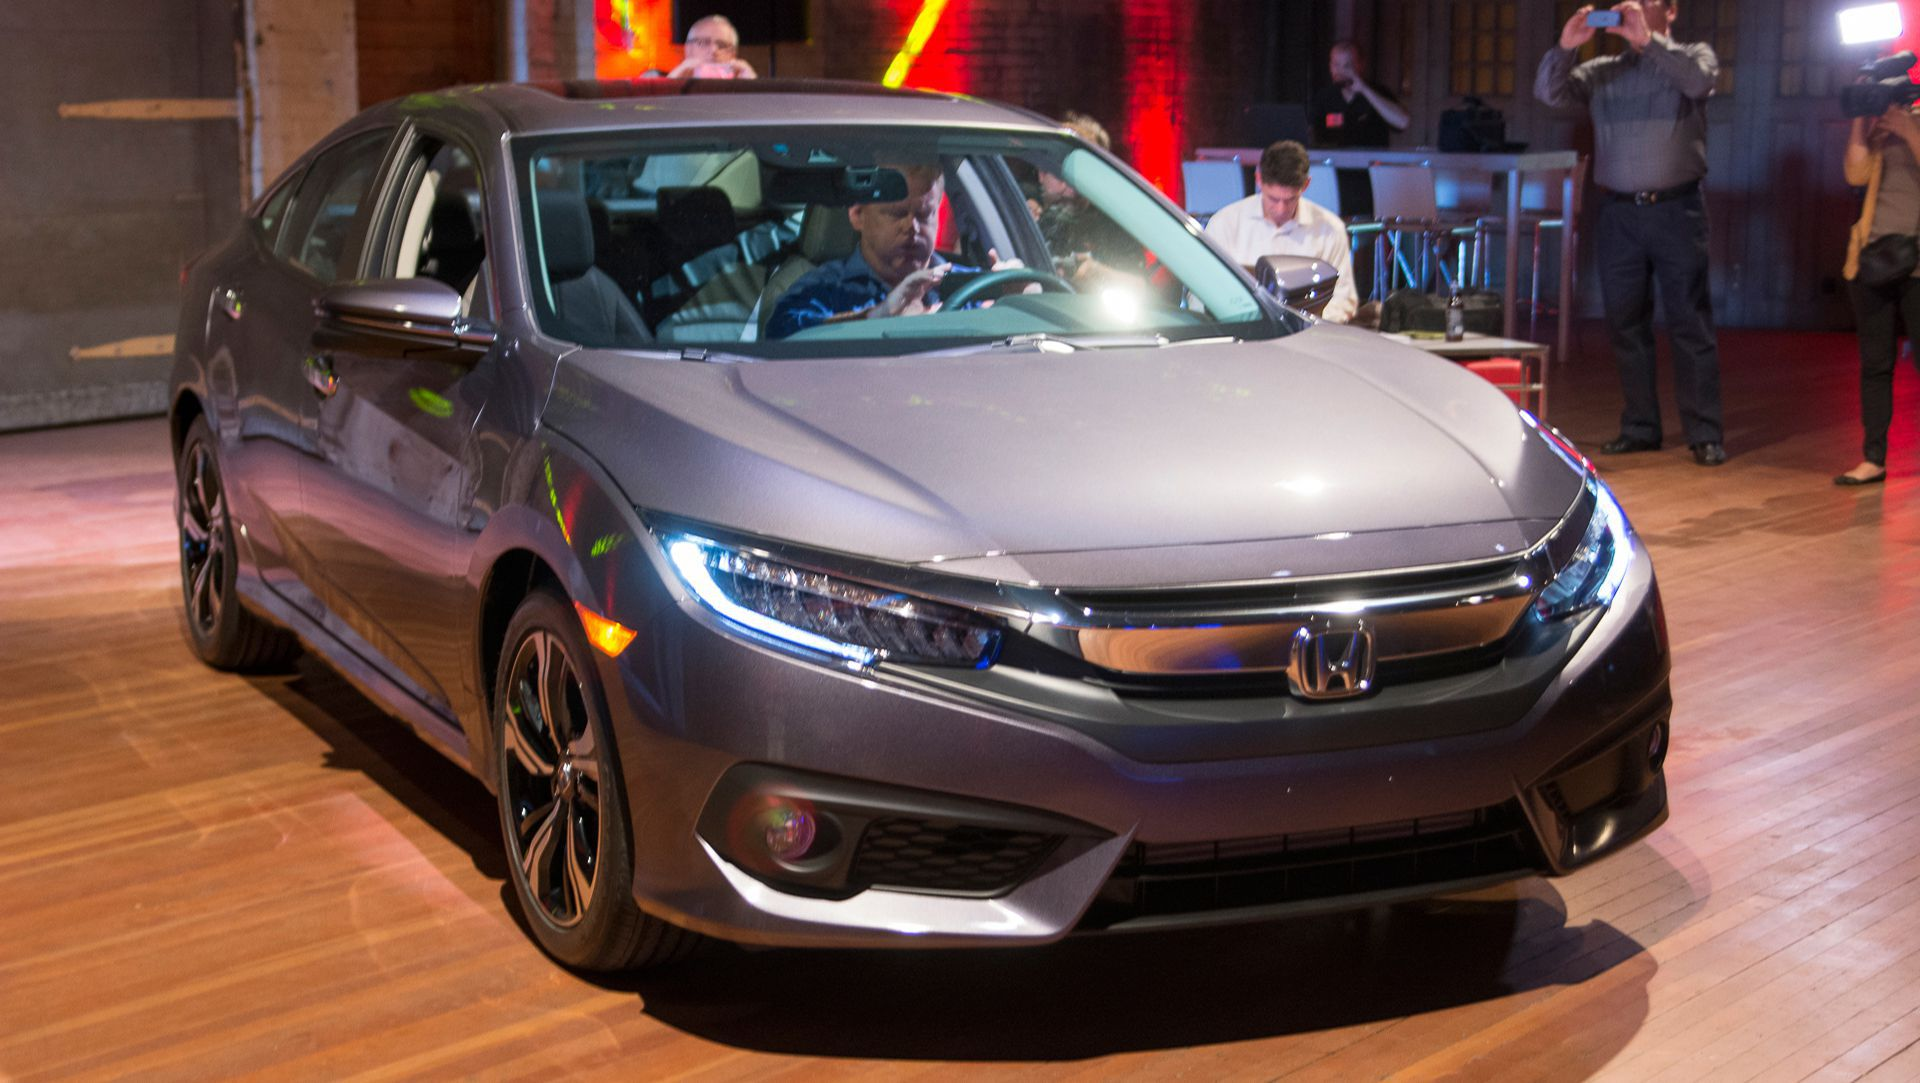 photos honda new official of photo debut autoevolution revealed news gallery ahead fully civic